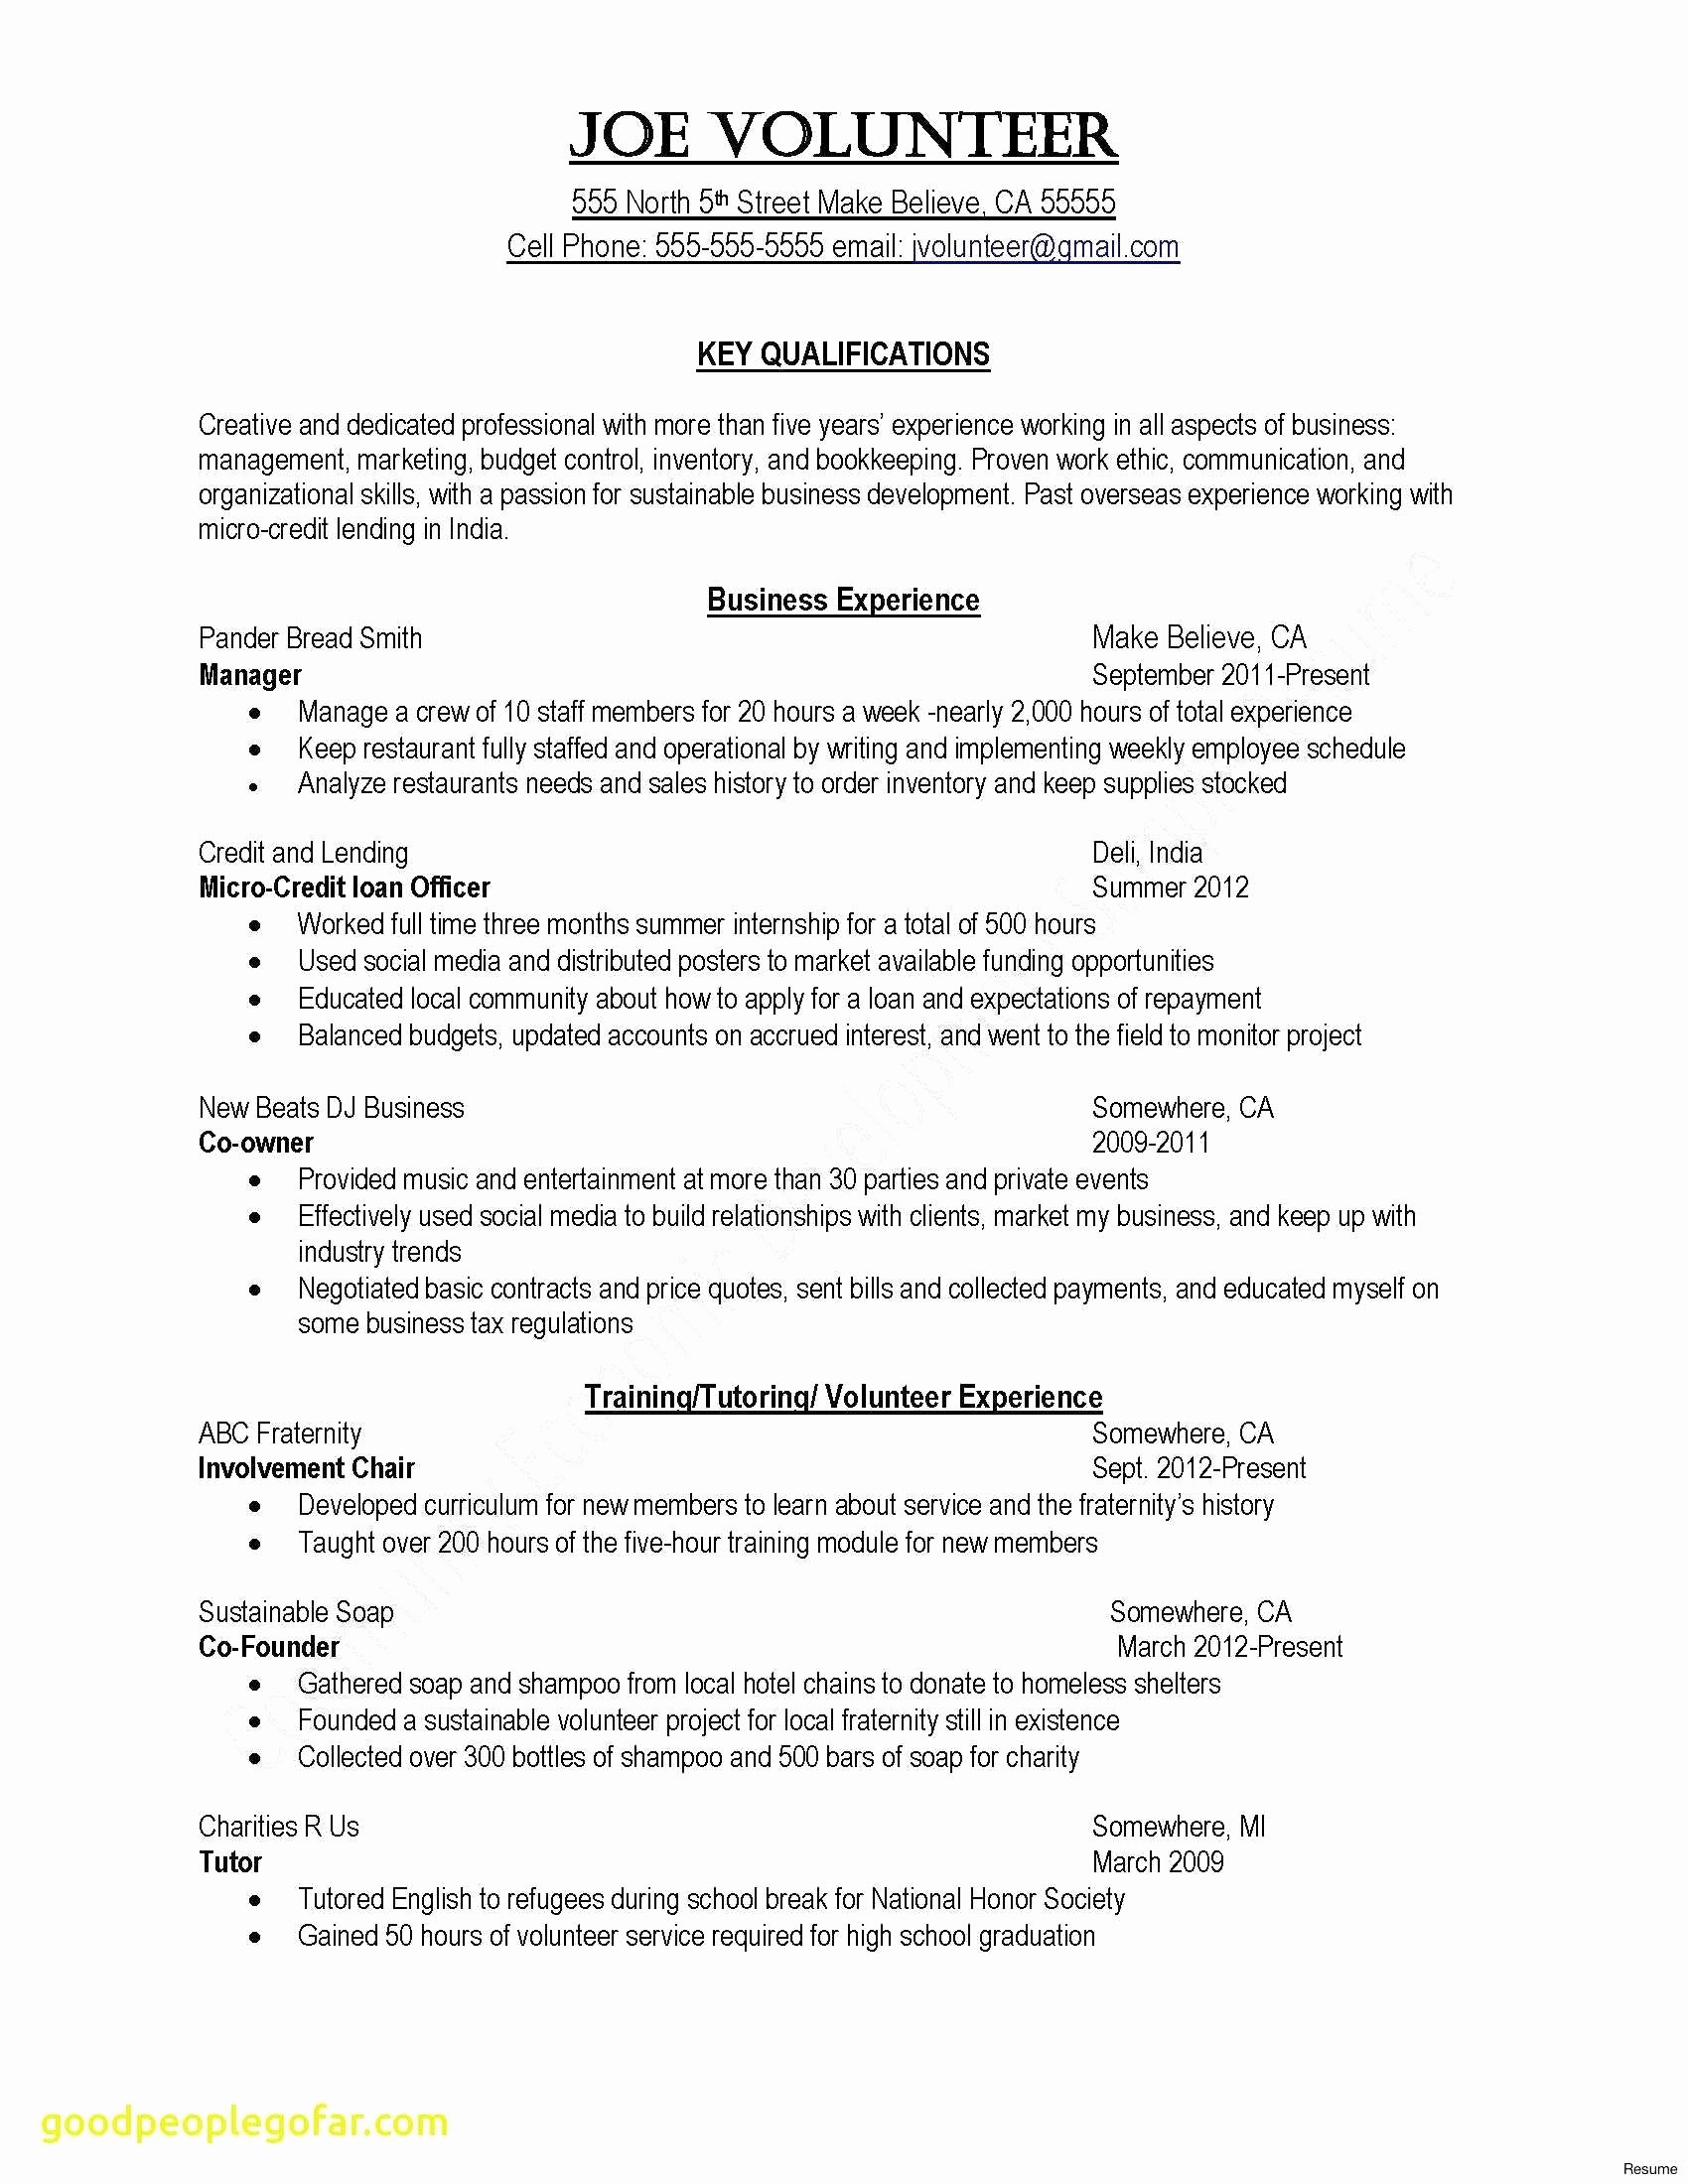 Resume for Law School Application Template - Law School Resume Sample Fresh 13 Unique S Resume Graduate School